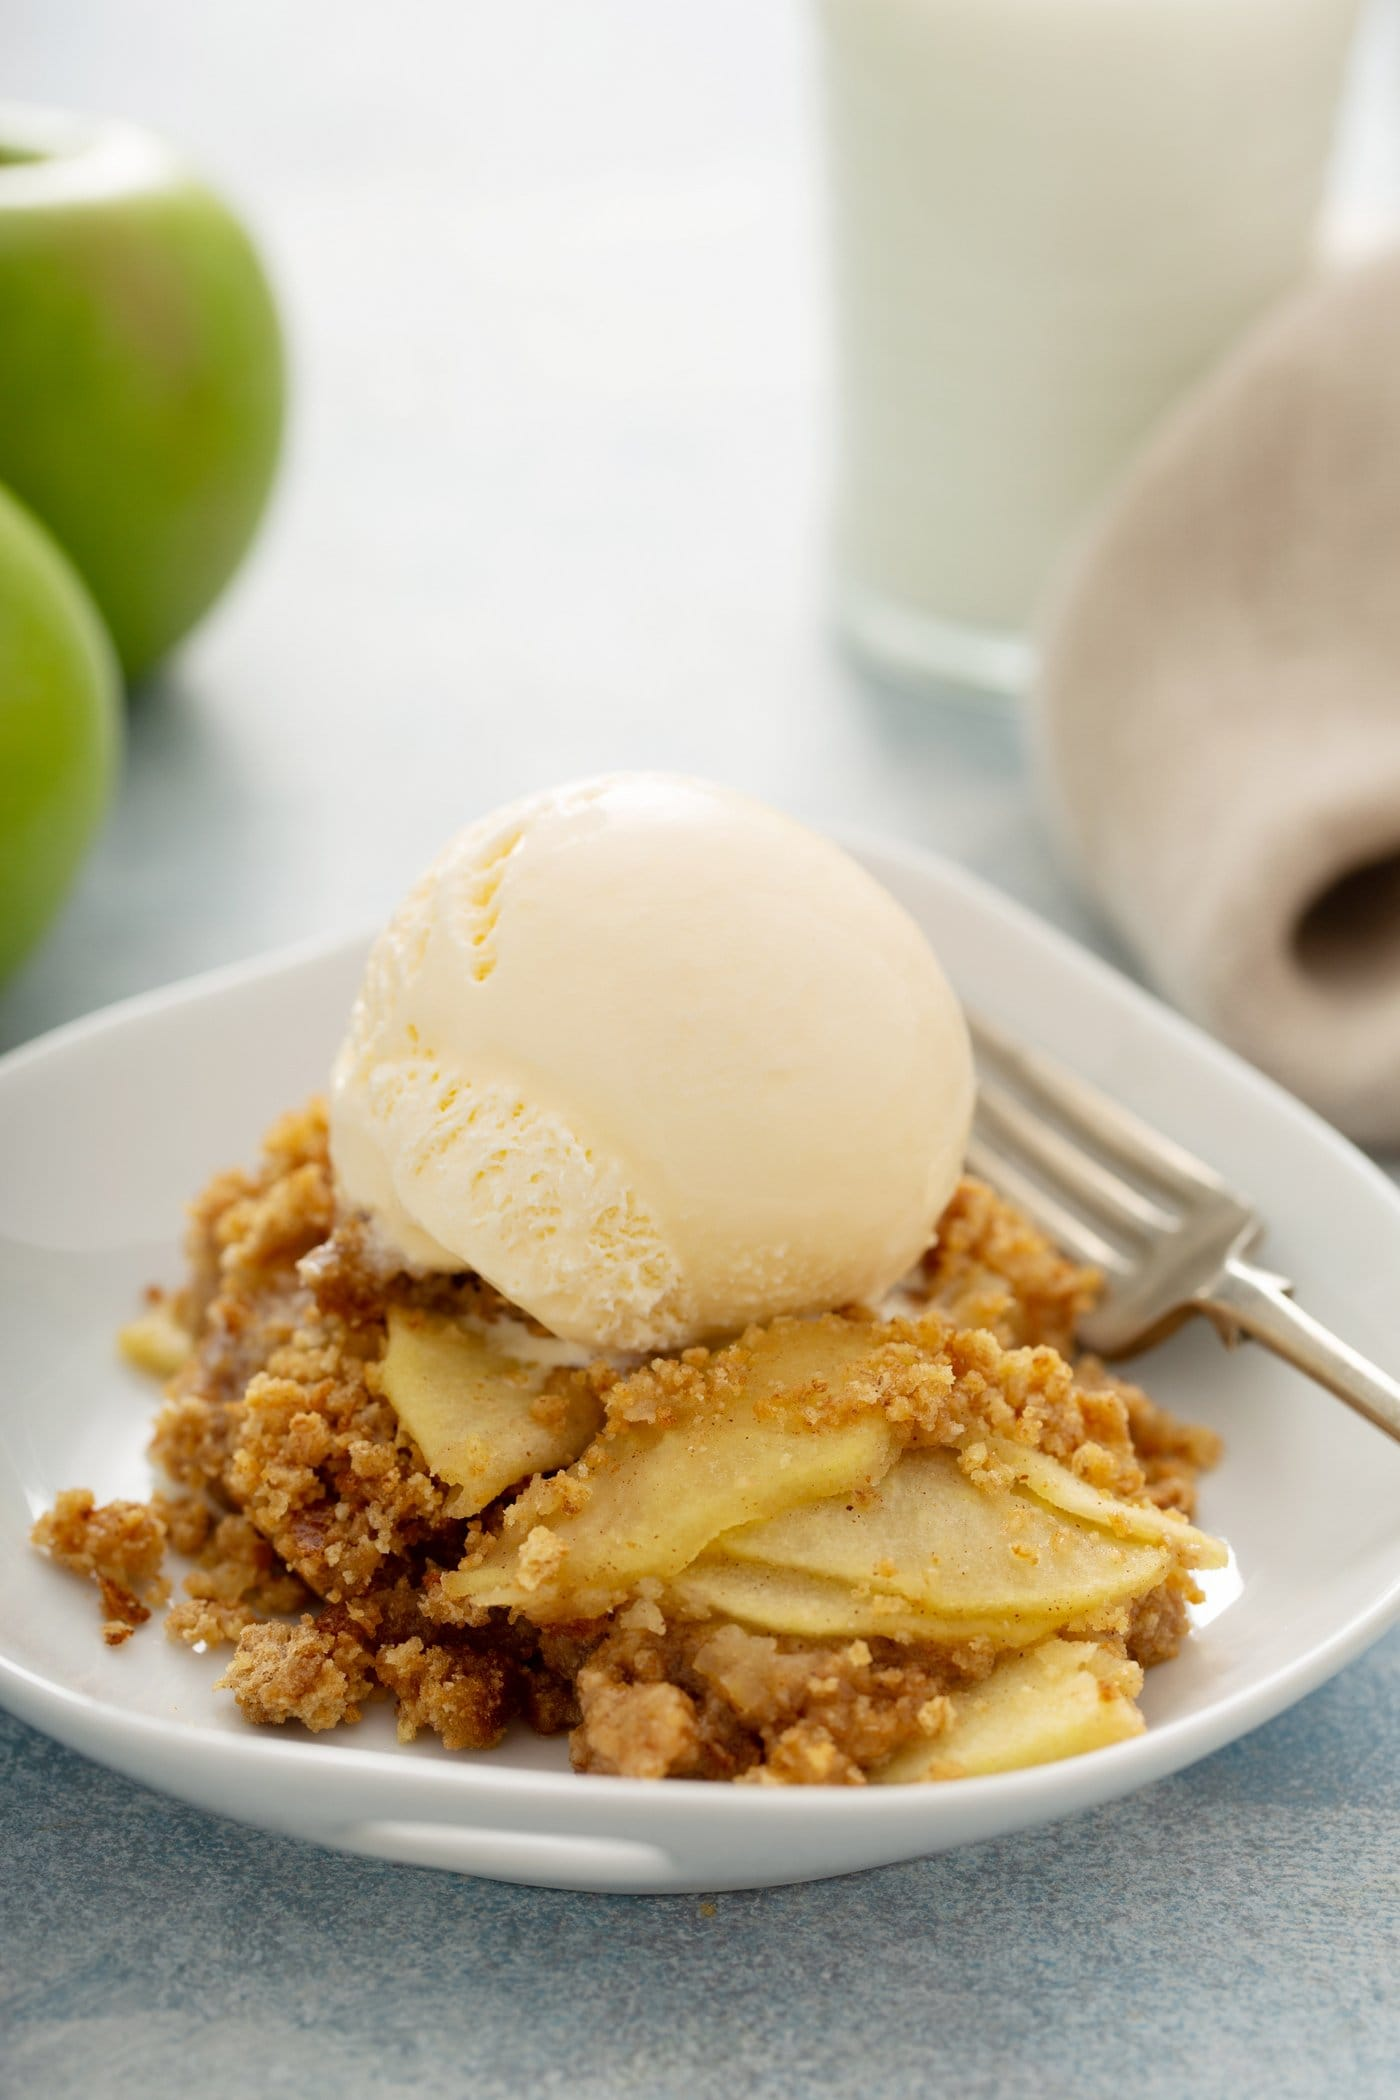 Apple Brown Betty on a dessert plate. There are slices of apples, with a brown bread crumb topping. The dessert has one scoop of vanilla ice cream on top and a fork next to it on the plate. Some green apples are in the background.